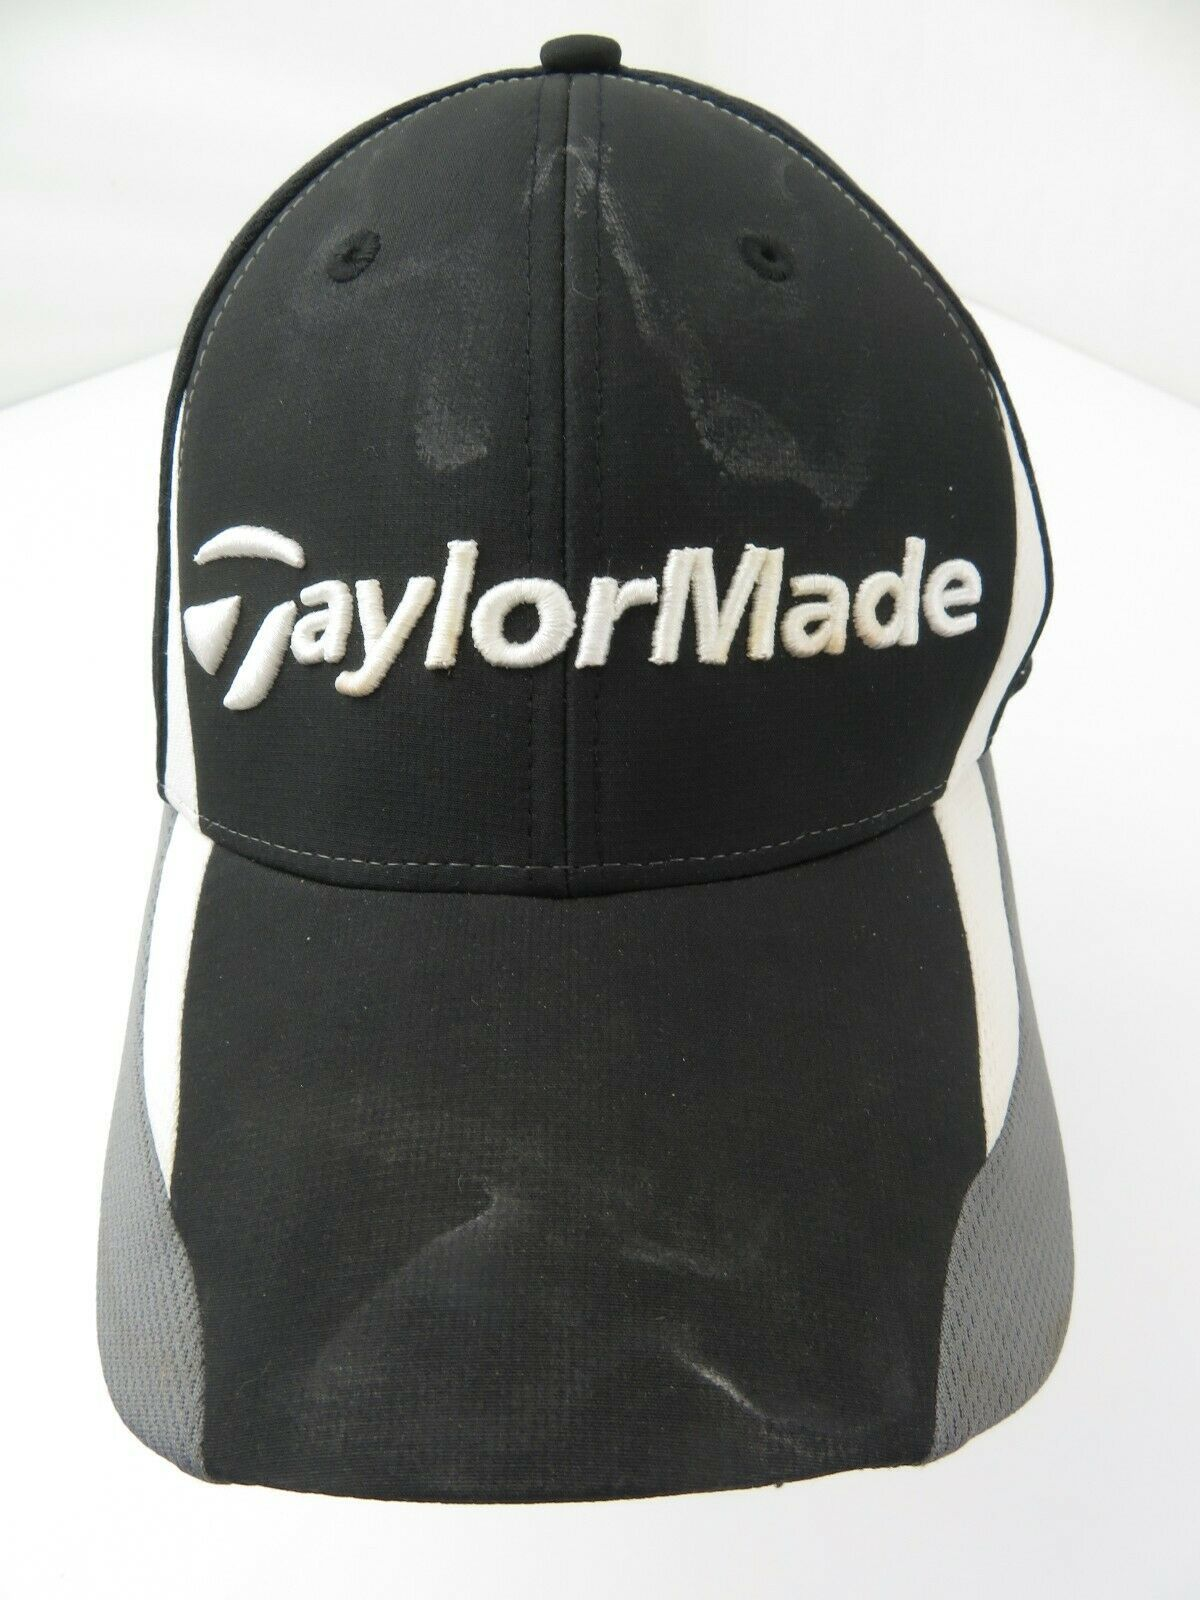 Primary image for Taylor Made F9 Penta Golf Adjustable Adult Cap Hat